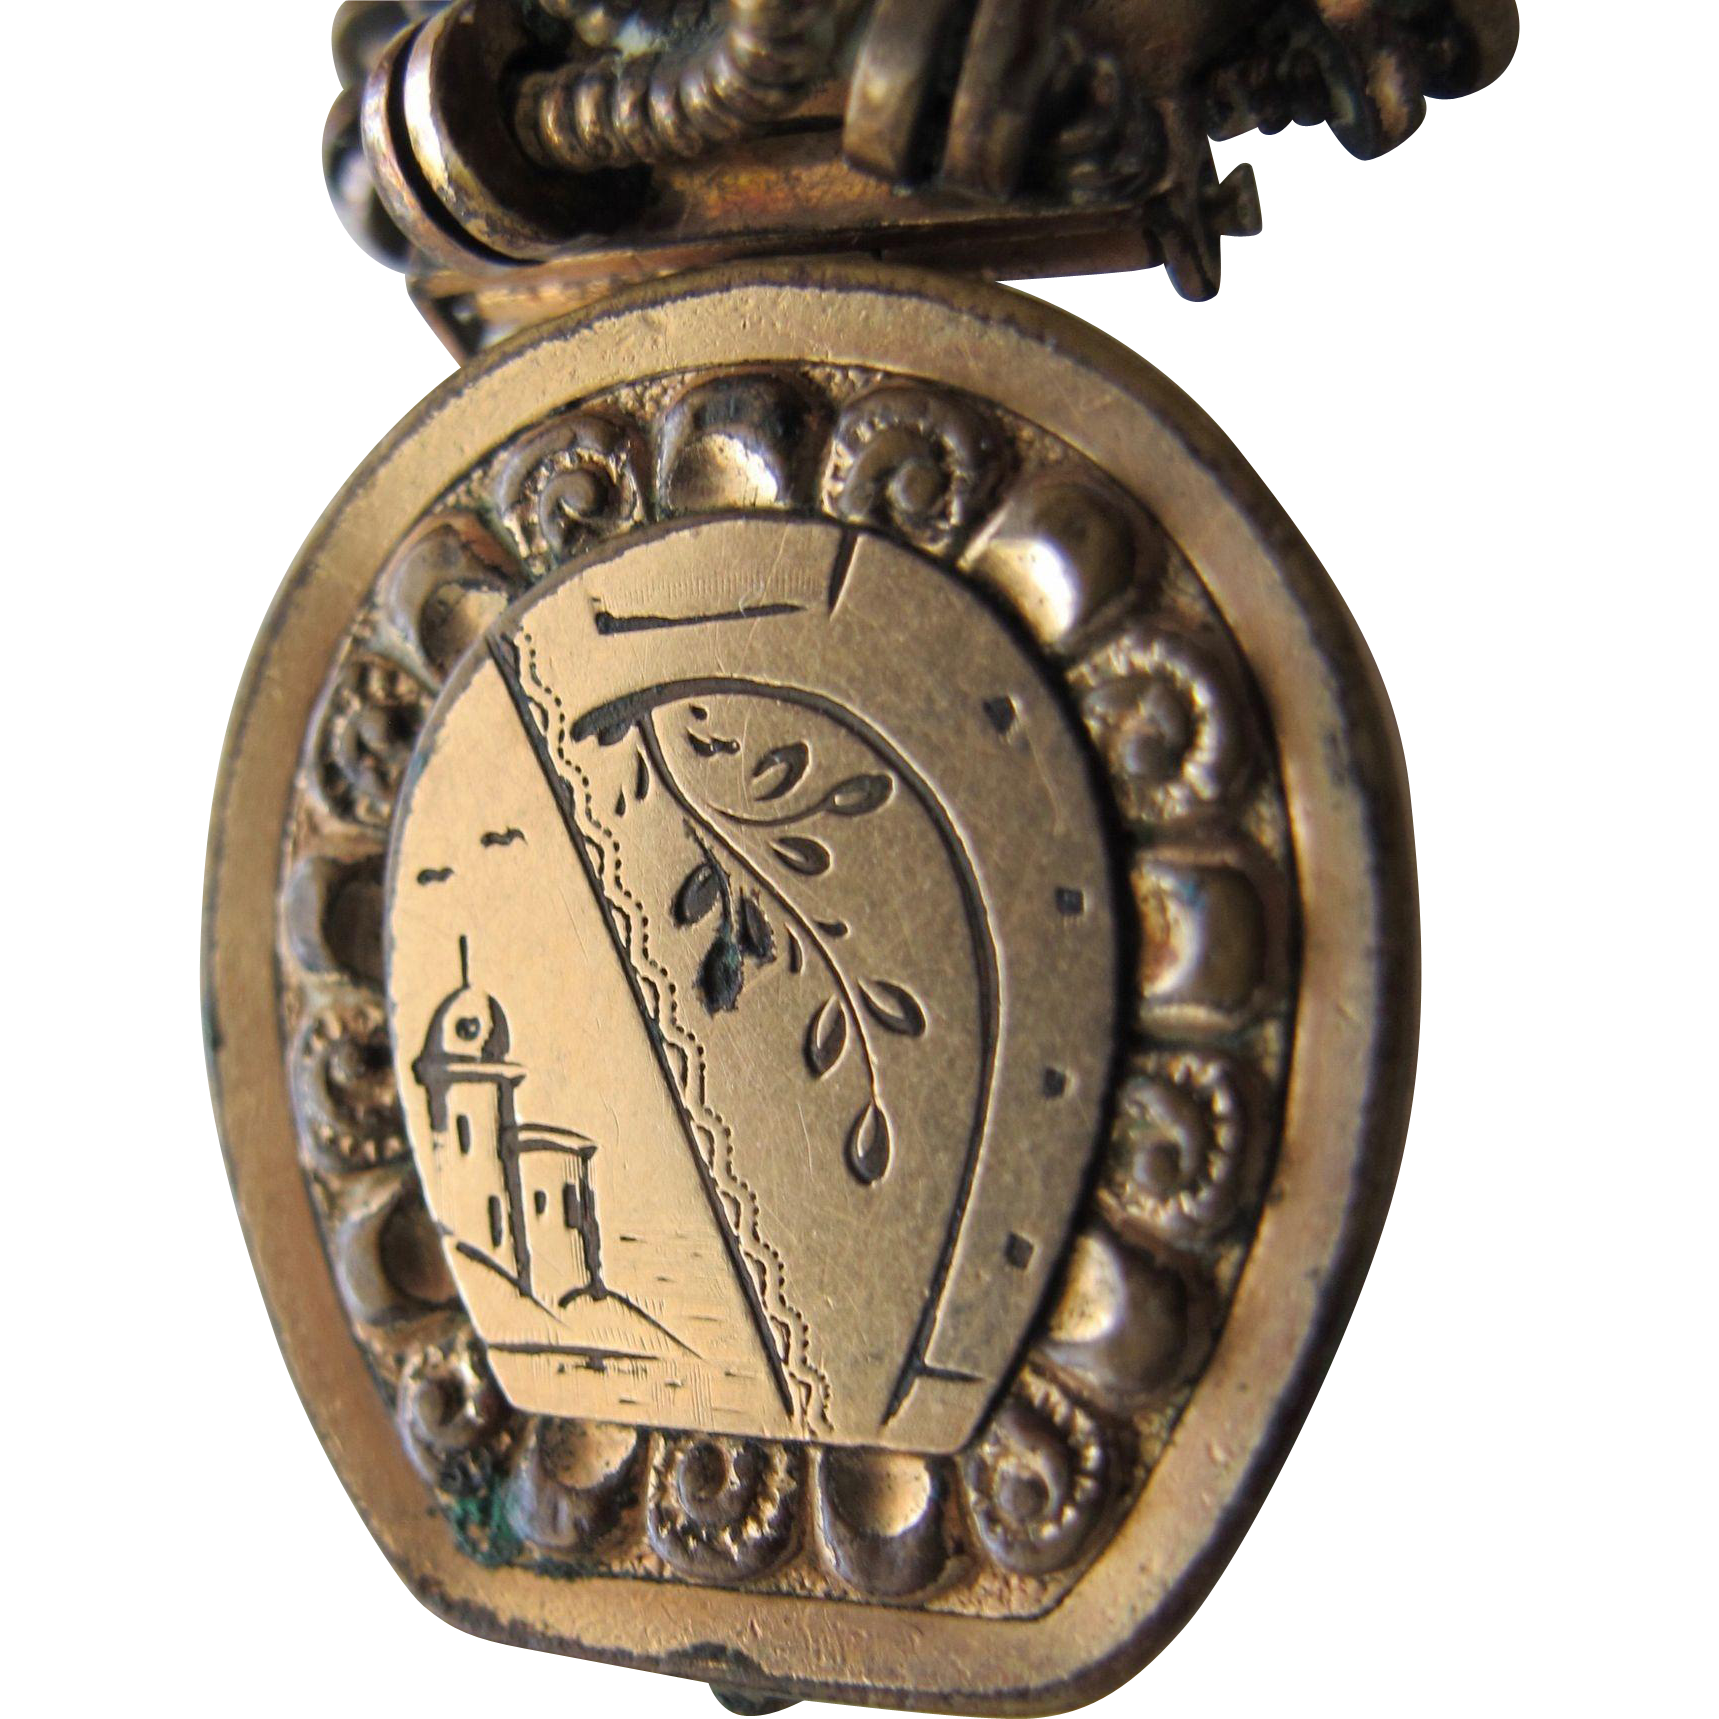 Locket Pendant from Victorian Era Gold Metal with Etching Unique